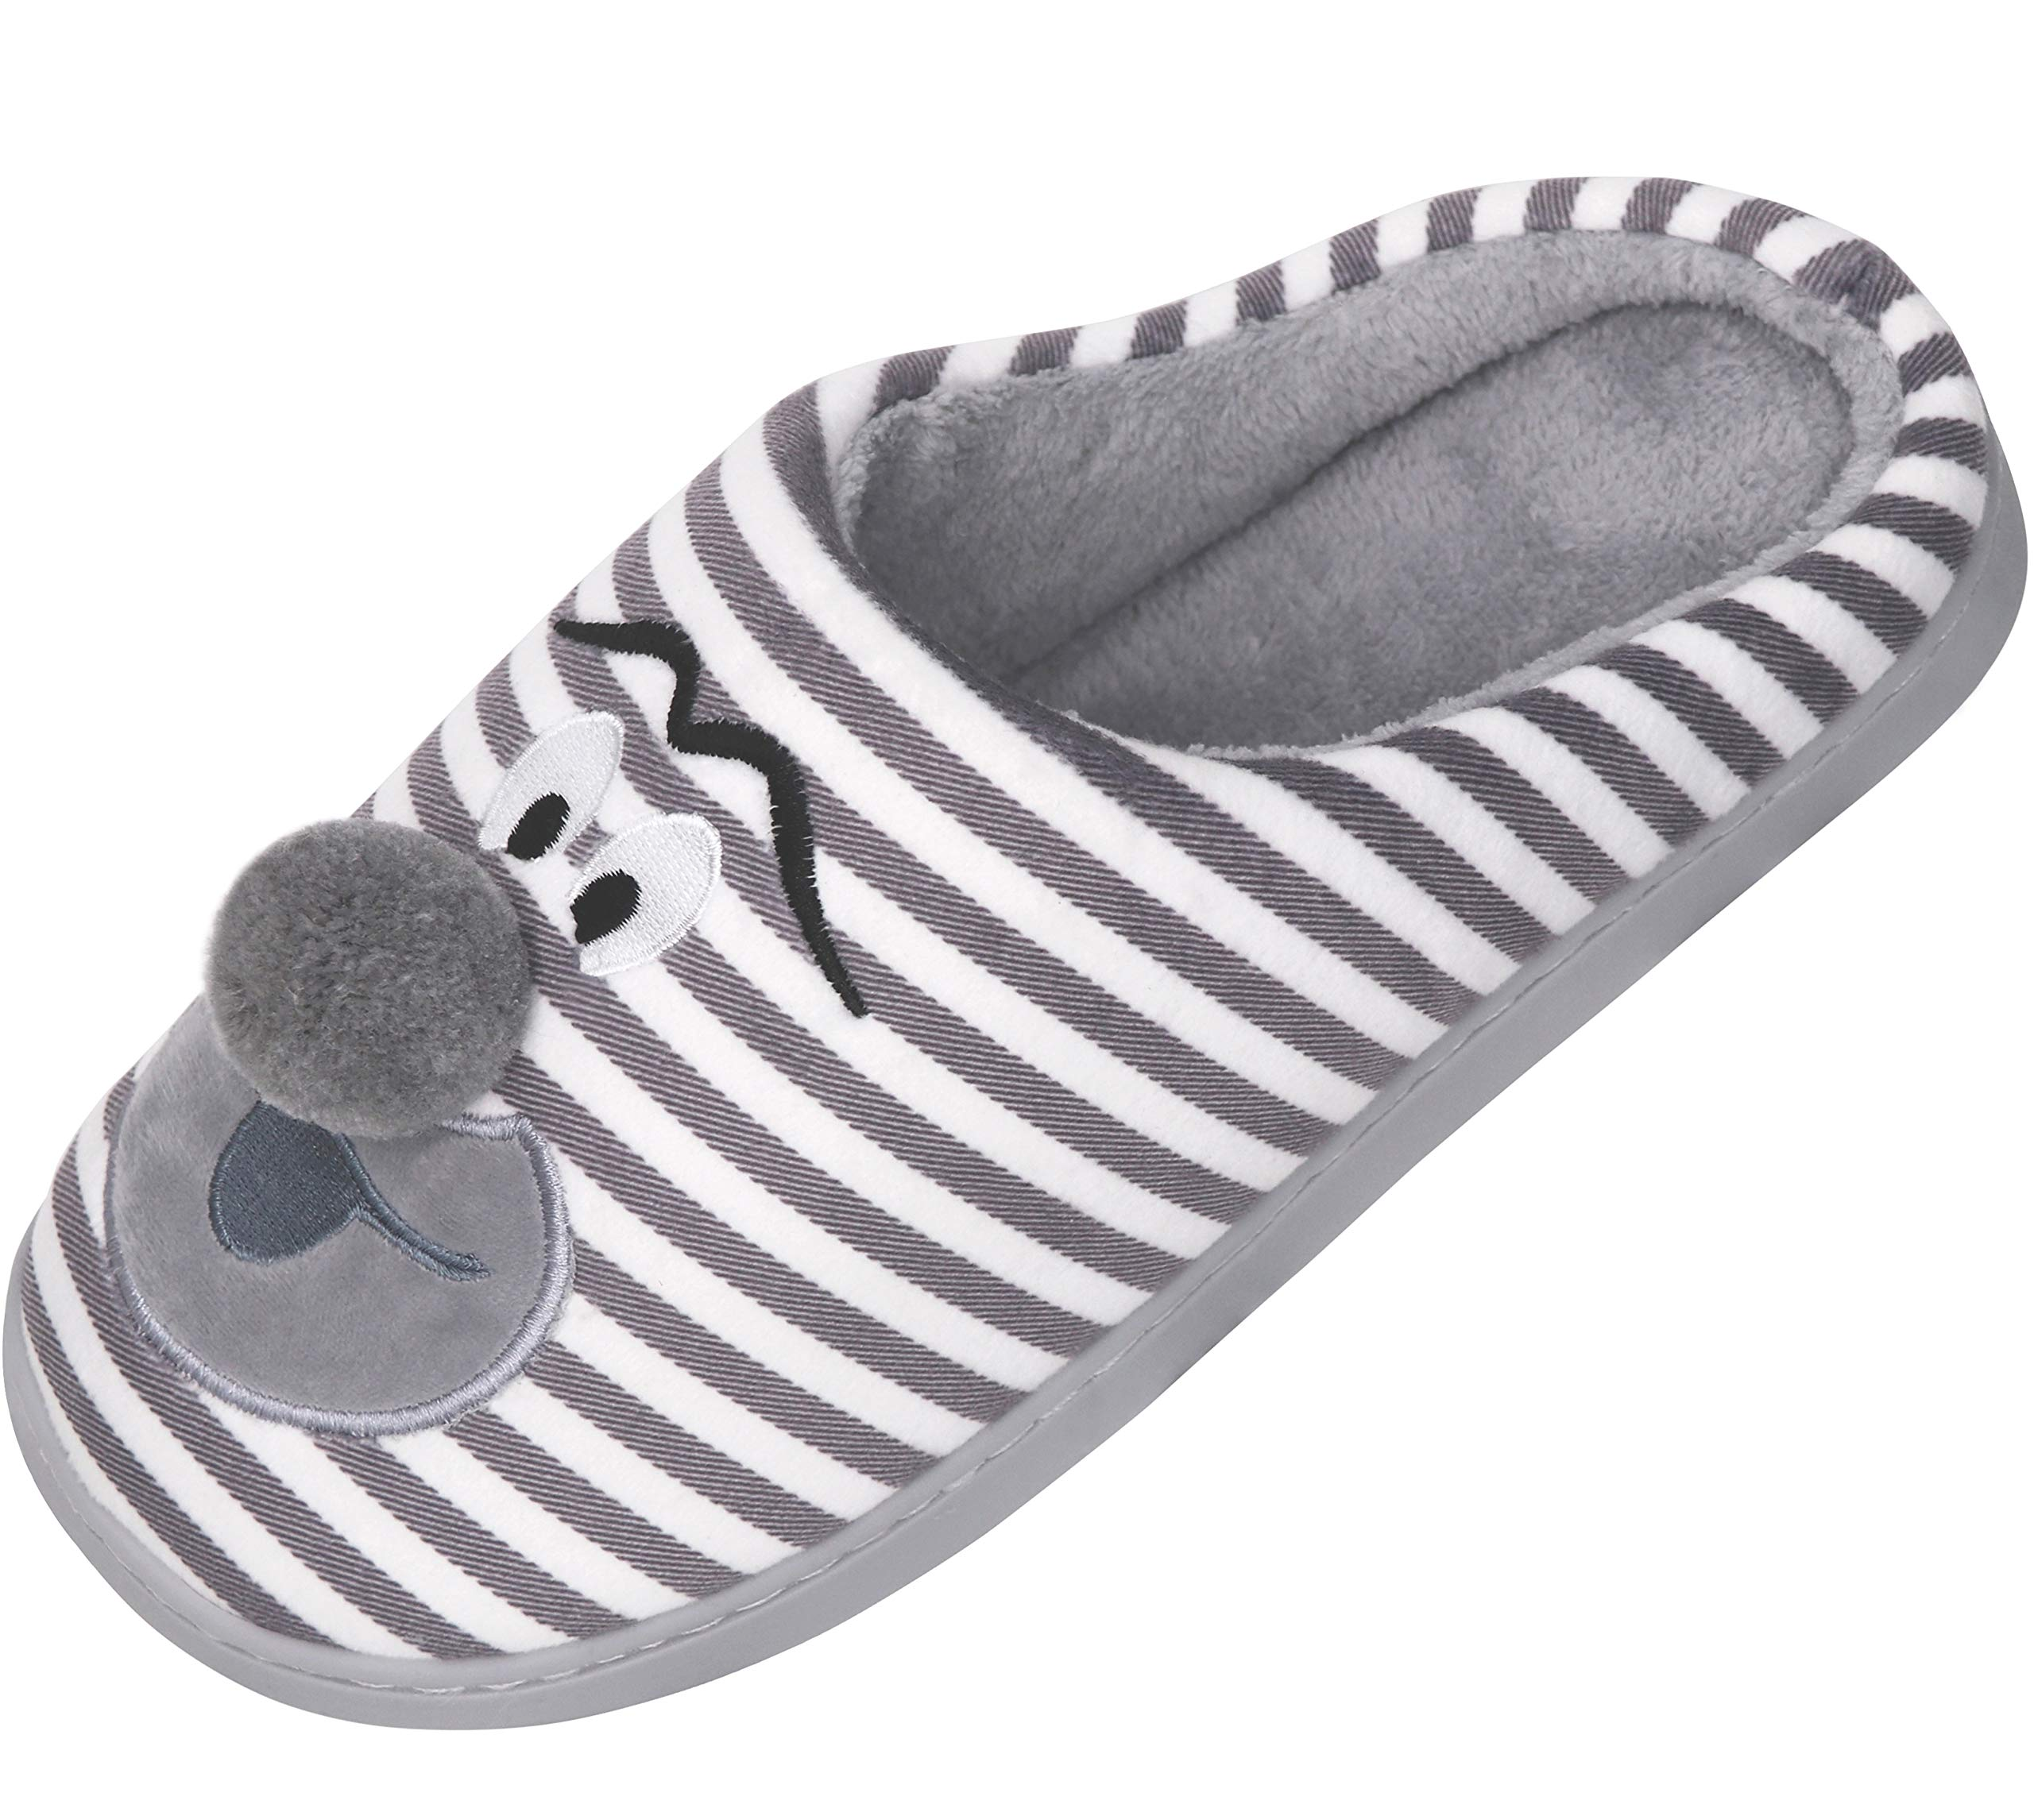 Unicorn Animal Slippers | Indoor Outdoor Women Slippers | Cozy Plush Home Shoes | Cute Fluffy Girls Slippers Grey 16.5In